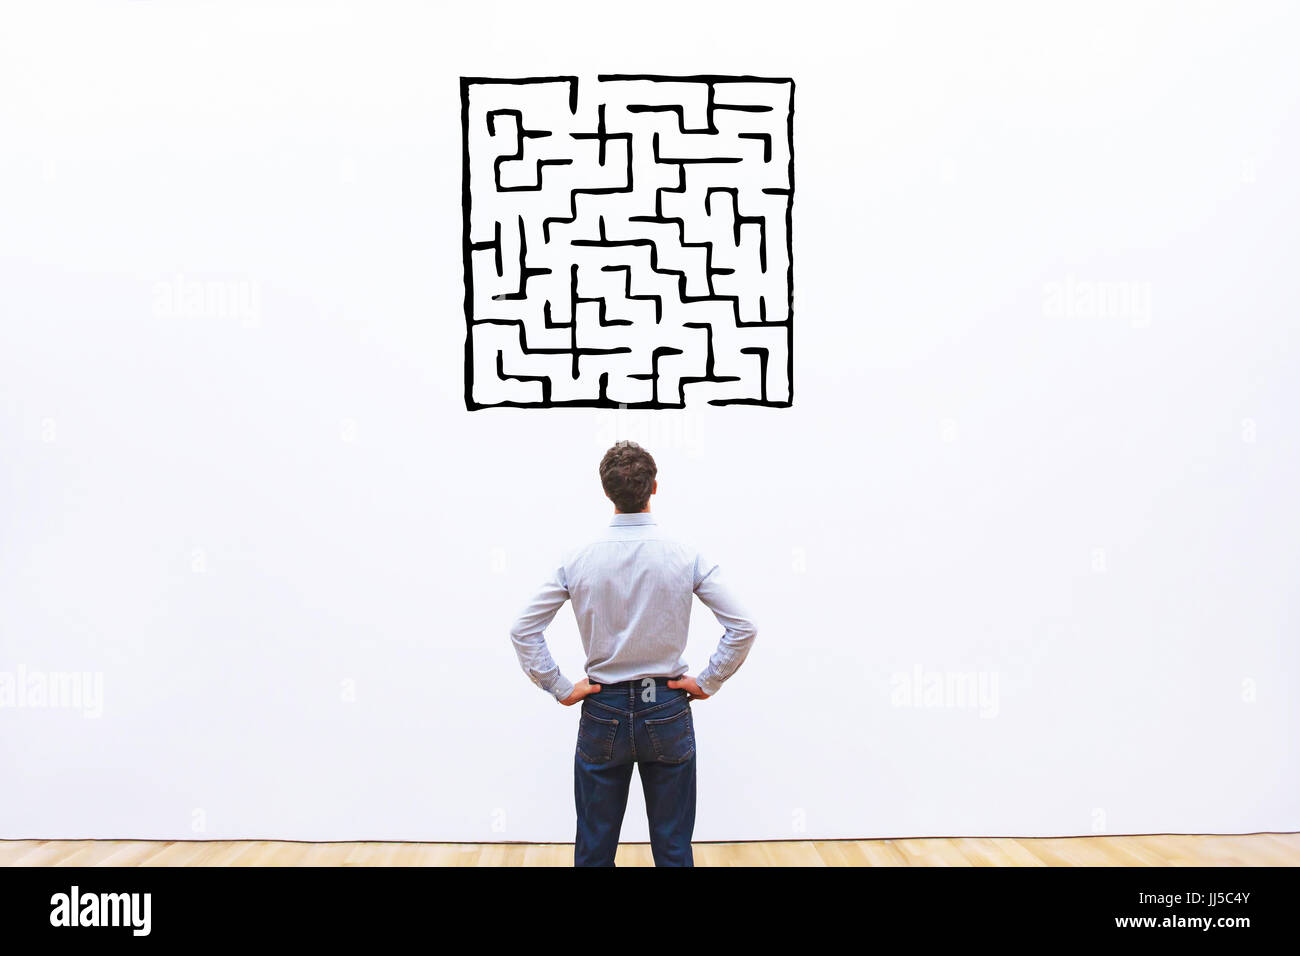 business man looking at labyrinth drawing, complicated difficult solution concept - Stock Image